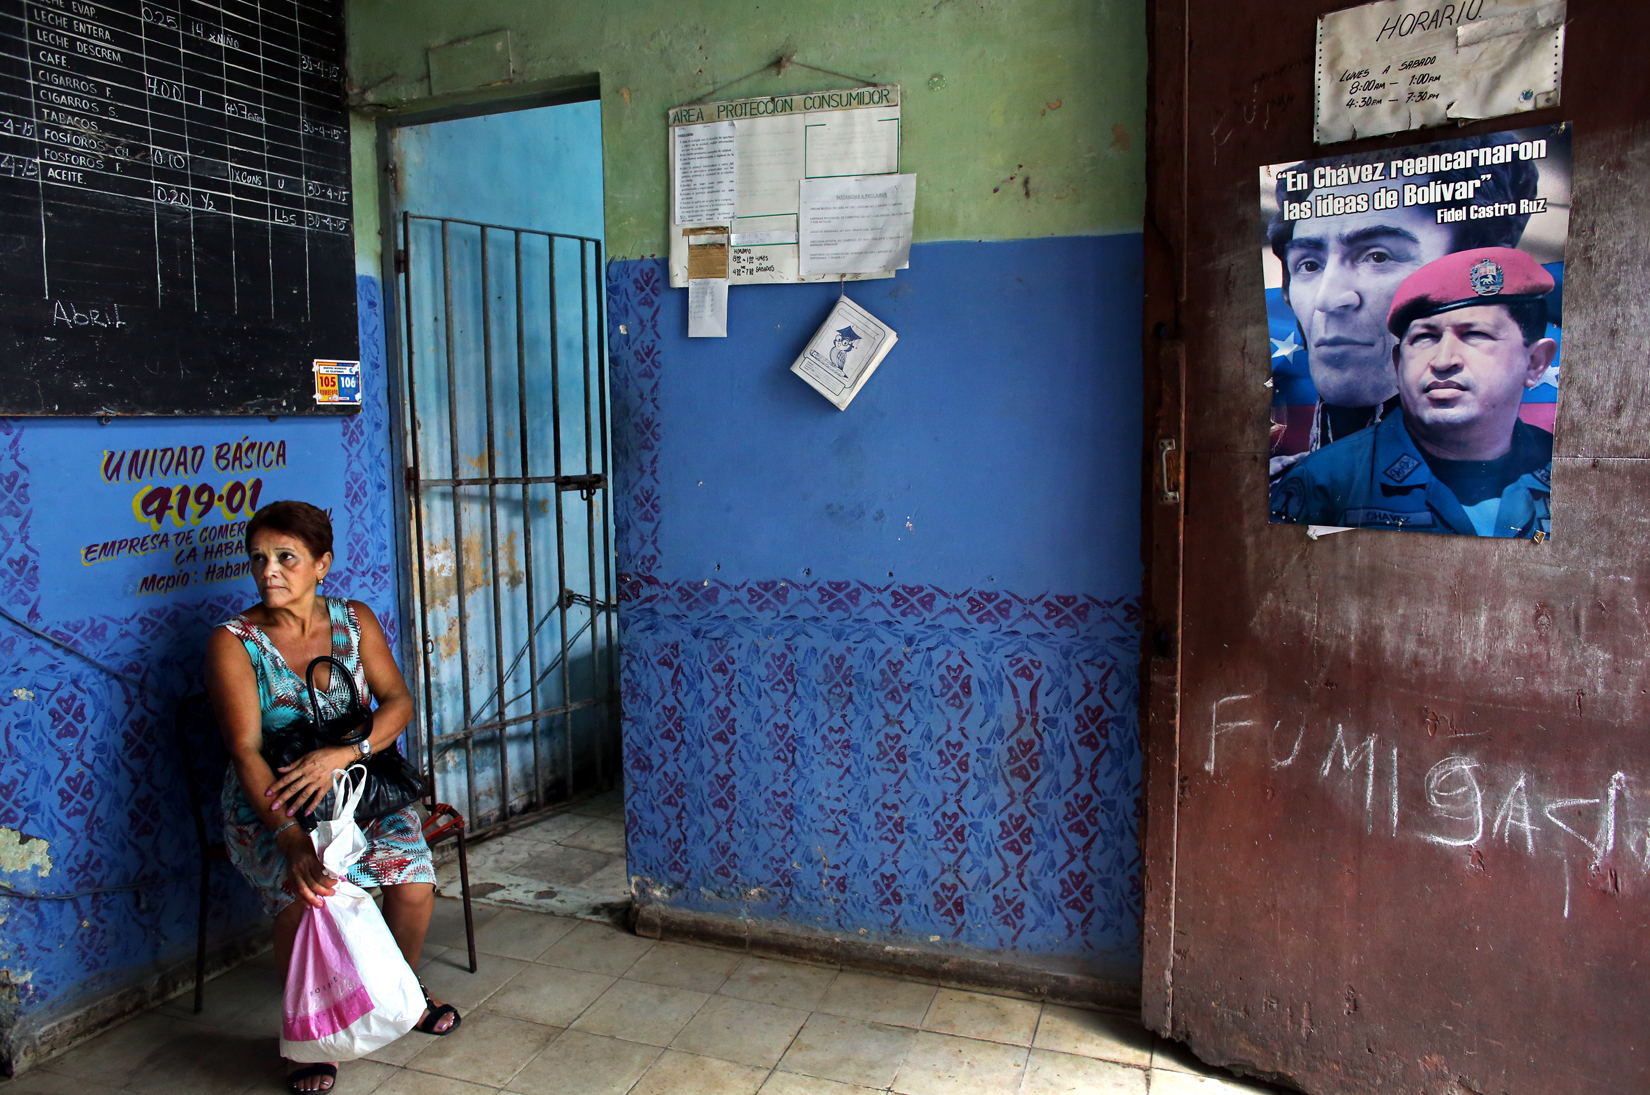 A woman waits her turn at a bodega in Havana, Cuba, near a photo of former Venezuelan President Hugo Chávez, with whom Cuba used to share a trade relationship and a distaste for American capitalism. Bodegas provide food rations - basics like rice, flour, sugar and beans, that exclude green veggies, most meat, spices or dairy (which is restricted to all but children and pregnant women) - to each Cuban citizen via the Libreta de Abastecimiento (supplies booklet,) which establishes the kind, amount and frequency of food allotted per person. The rations, which supply approximately 1/3 of Cubans' food requirements, have been kept at stable, subsidized prices since the program's inception in 1962 - as food can otherwise be forbiddingly expensive, and even at bodegas, hard to come by. This is due to a combination of inefficient farming policies, the U.S. embargo (in place since the 60s,) and the collapse of the Soviet Union in the 90s (which until then had filled the U.S.-Cuba trade vacuum with subsidies.) Food shortages, while common today, were especially sharp then, both in Bulgaria and Cuba, as the two countries tried to adjust to a non-Soviet-sponsored economy.